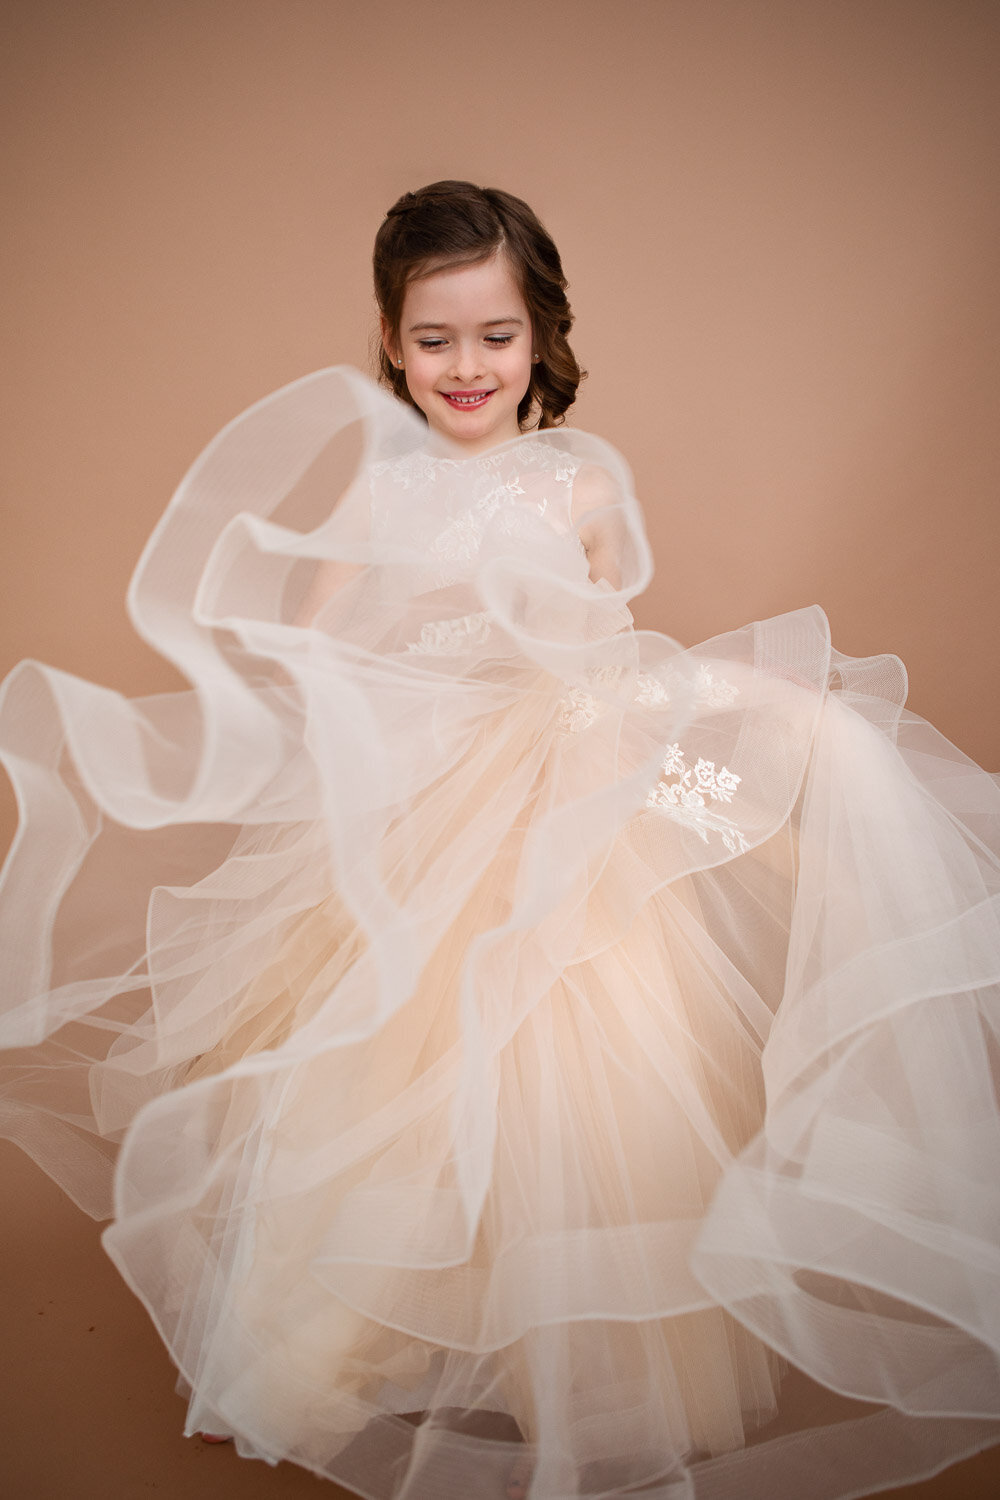 Little girl spinning in a long dress